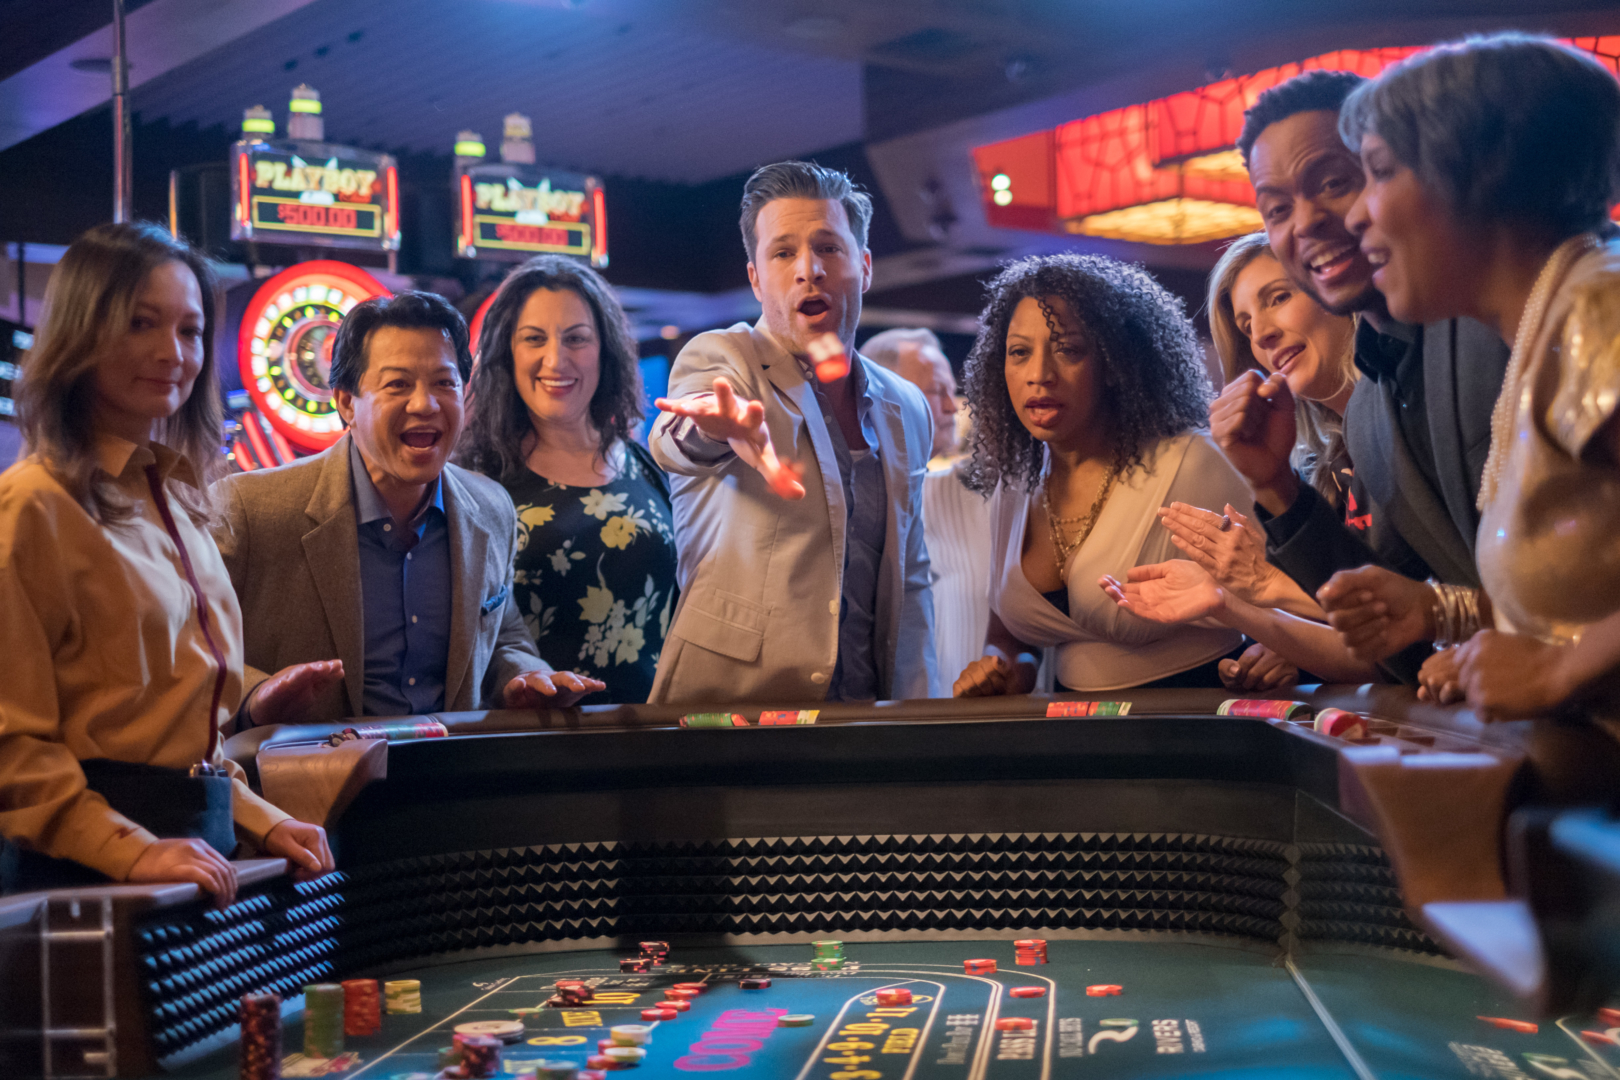 Some Casino Life Hacks That Will Make You A Richer Player